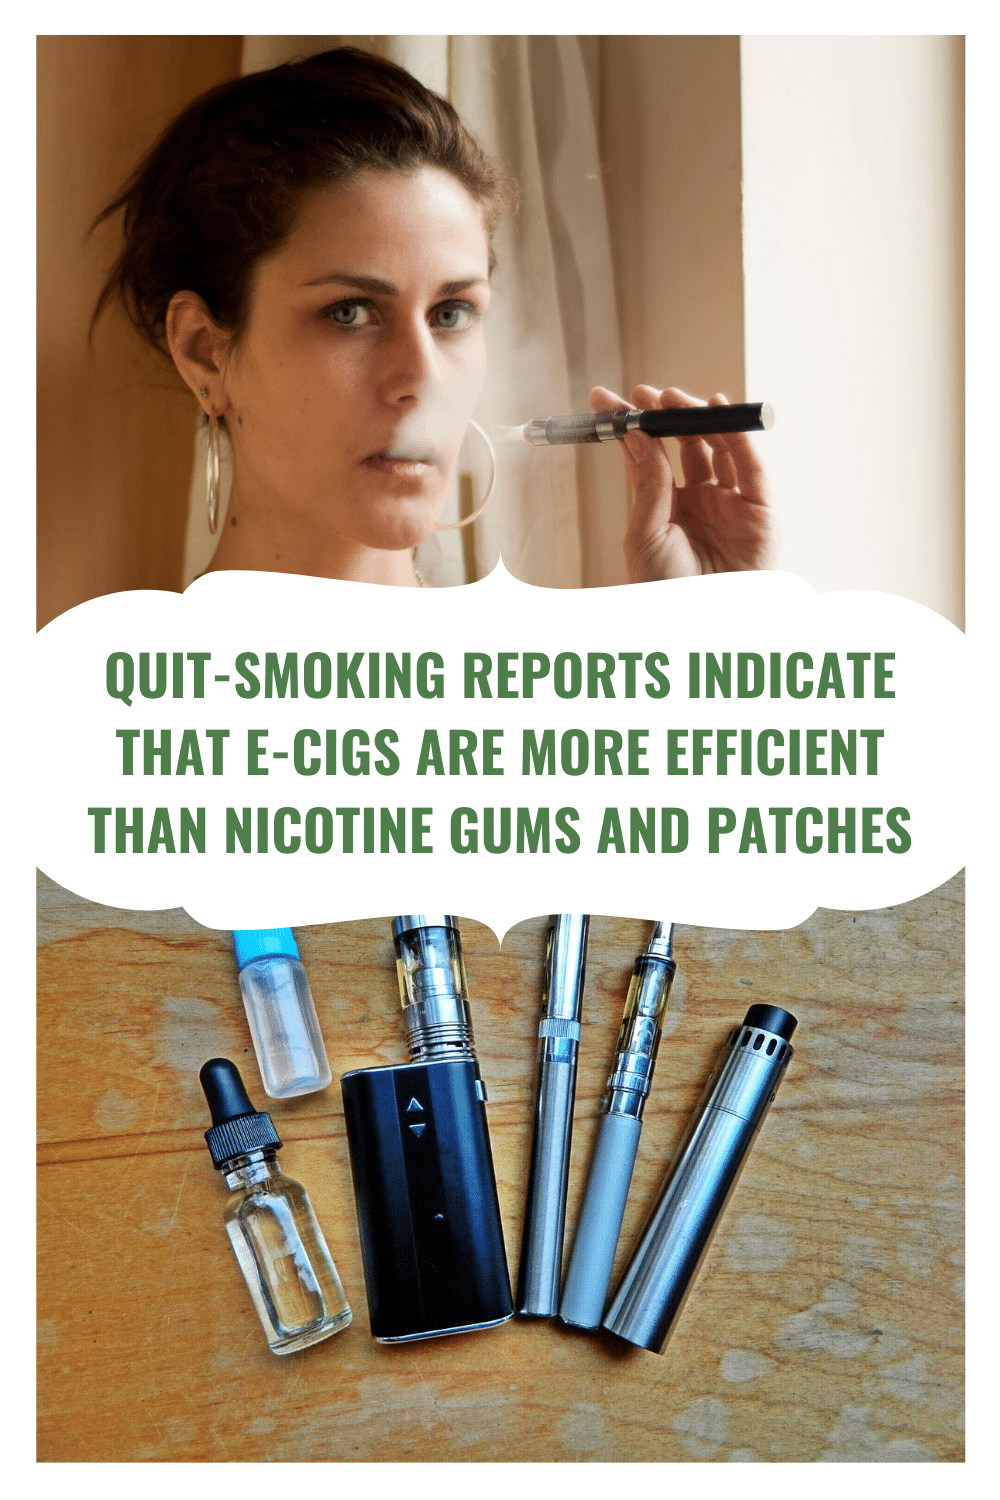 QUIT-SMOKING REPORTS INDICATE THAT E-CIGS ARE MORE EFFICIENT THAN NICOTINE GUMS AND PATCHES